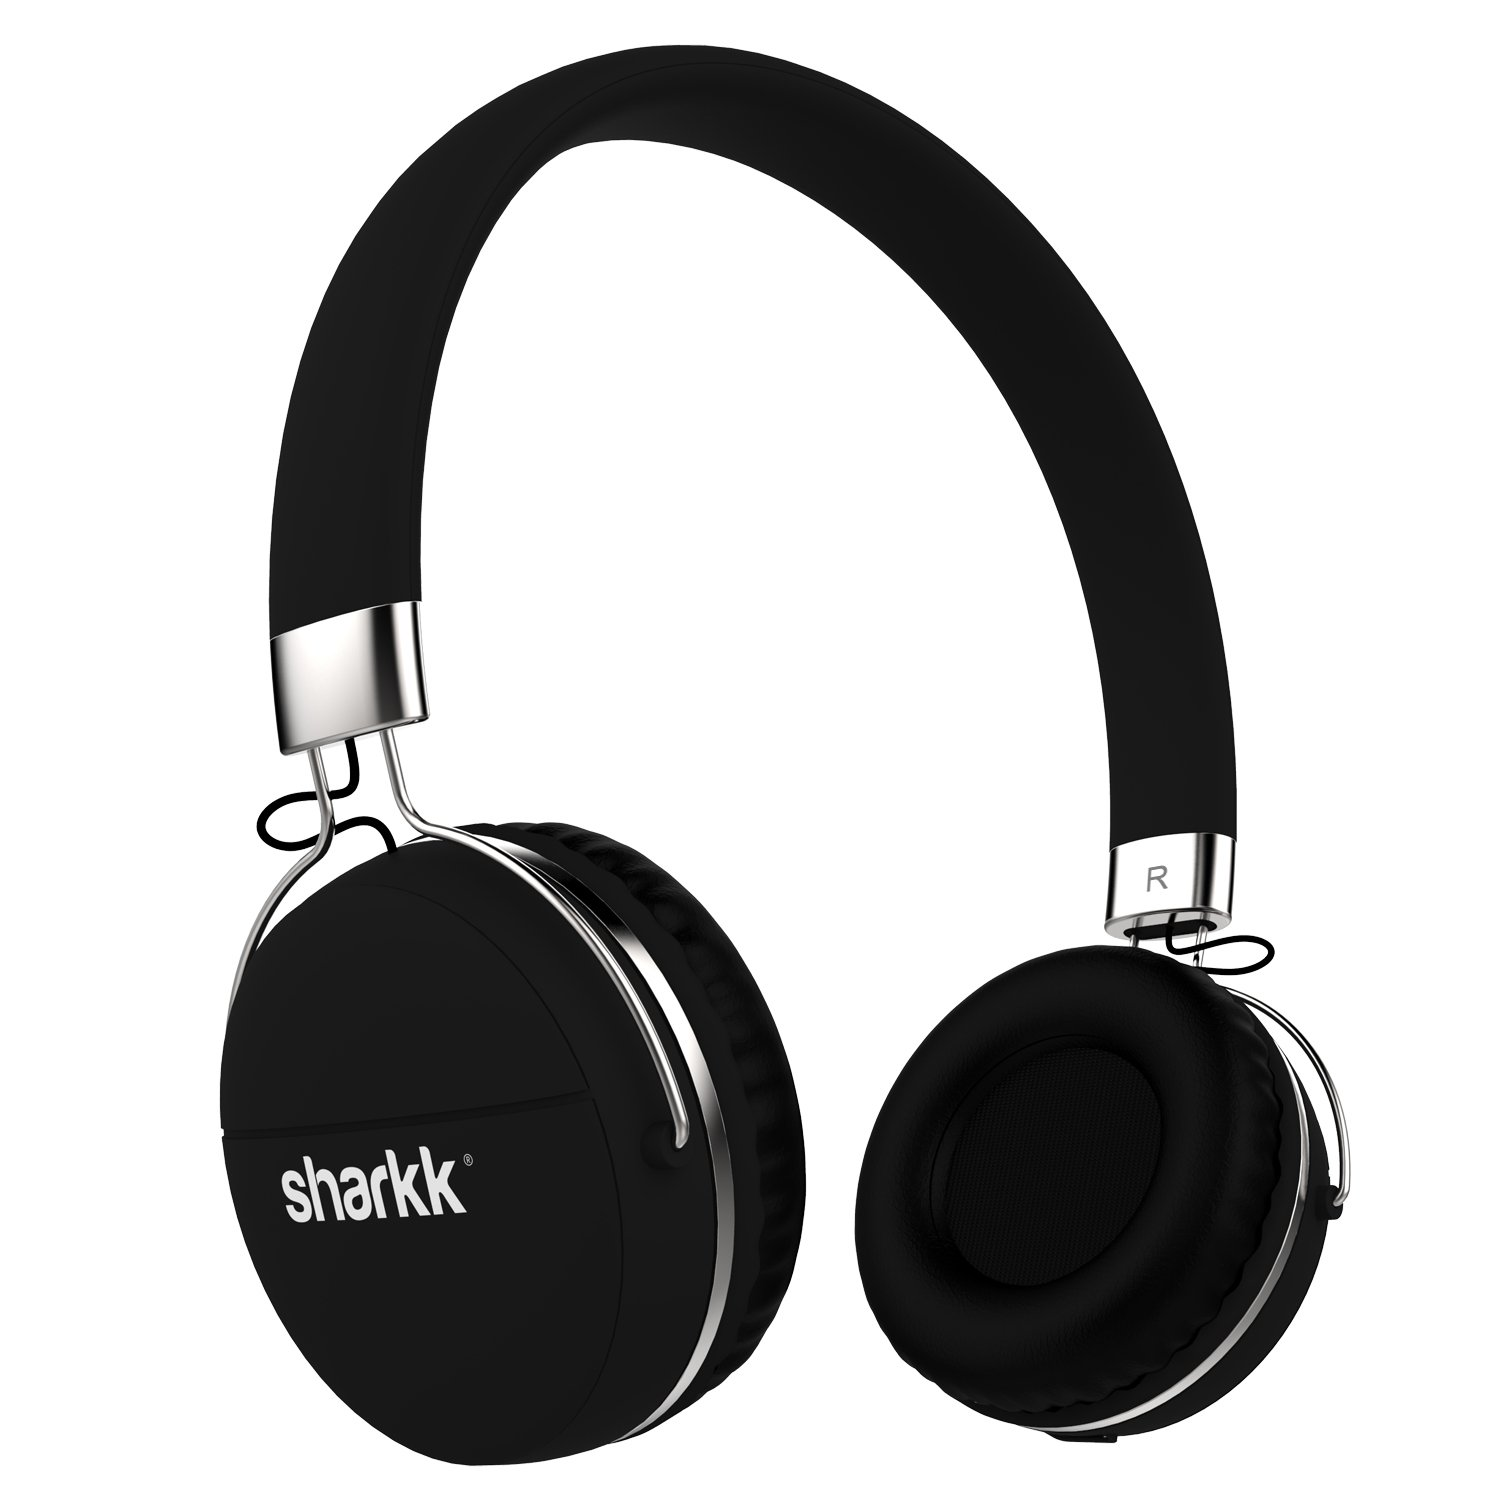 Bluetooth Headphones Sharkk Stereo Multi-Point Connected Bluetooth Wireless Headset Headphones 12 Hour Play Time Bluetooth Headset with Mic